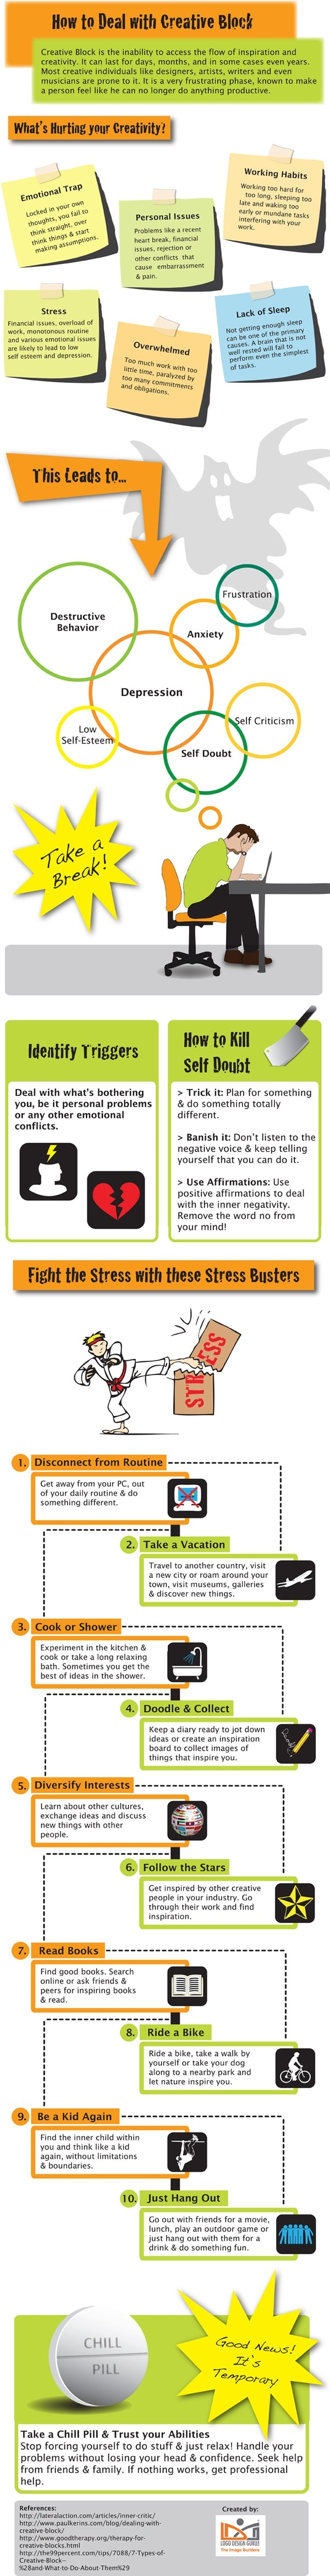 creative-block-cure-steps-infographic